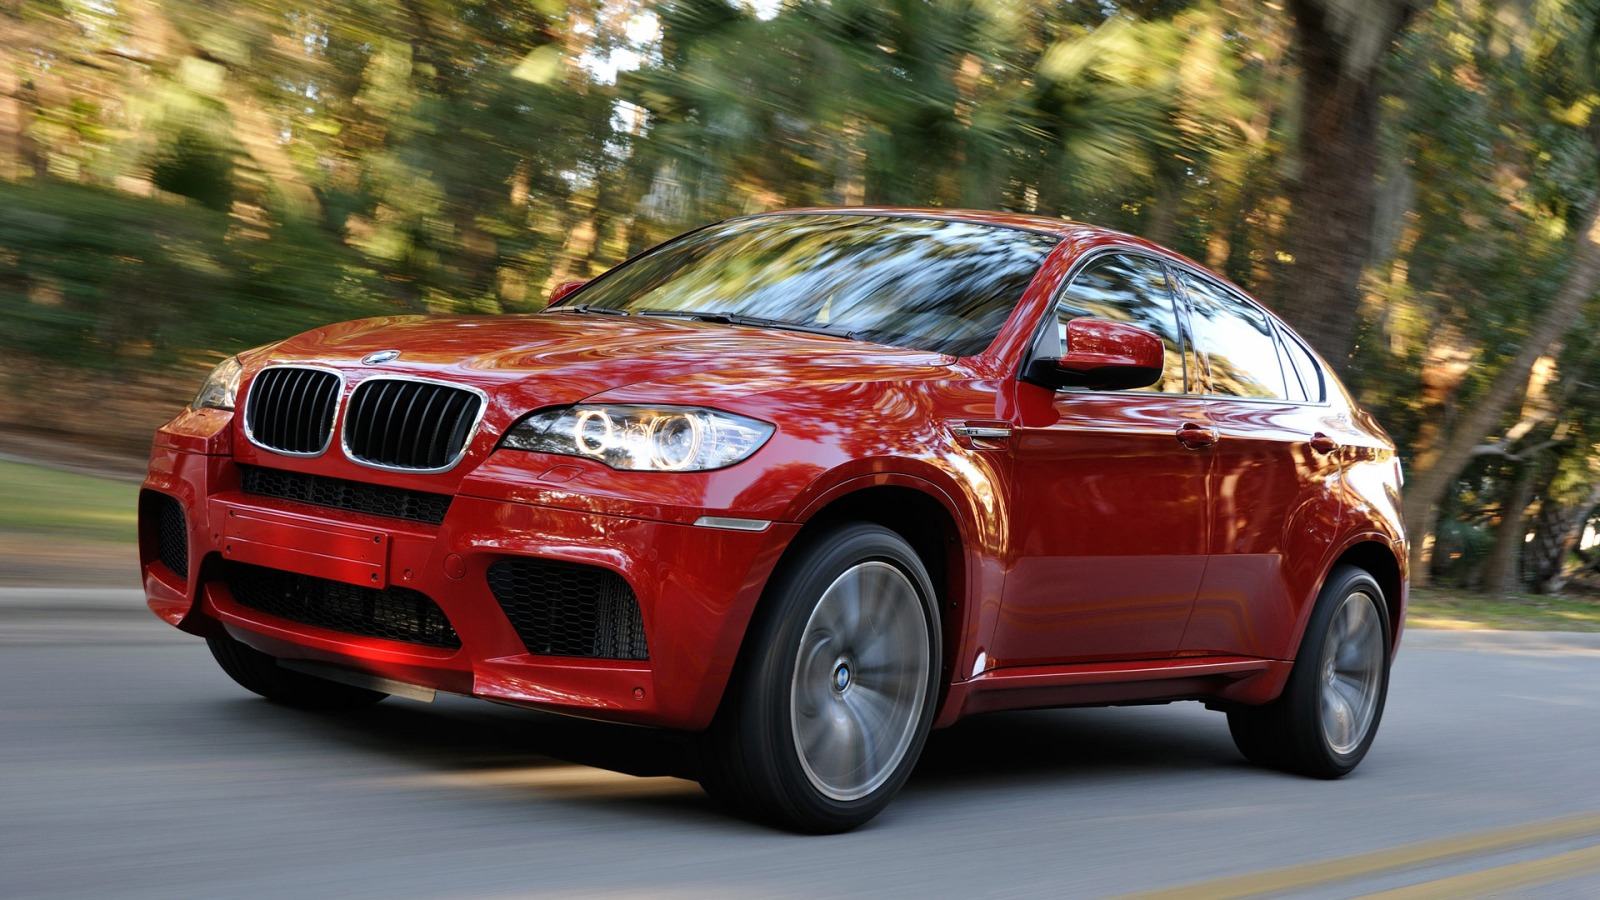 Bmw Cars Photos Free Download: BMW X6 M Wallpaper BMW Cars Wallpapers In Jpg Format For